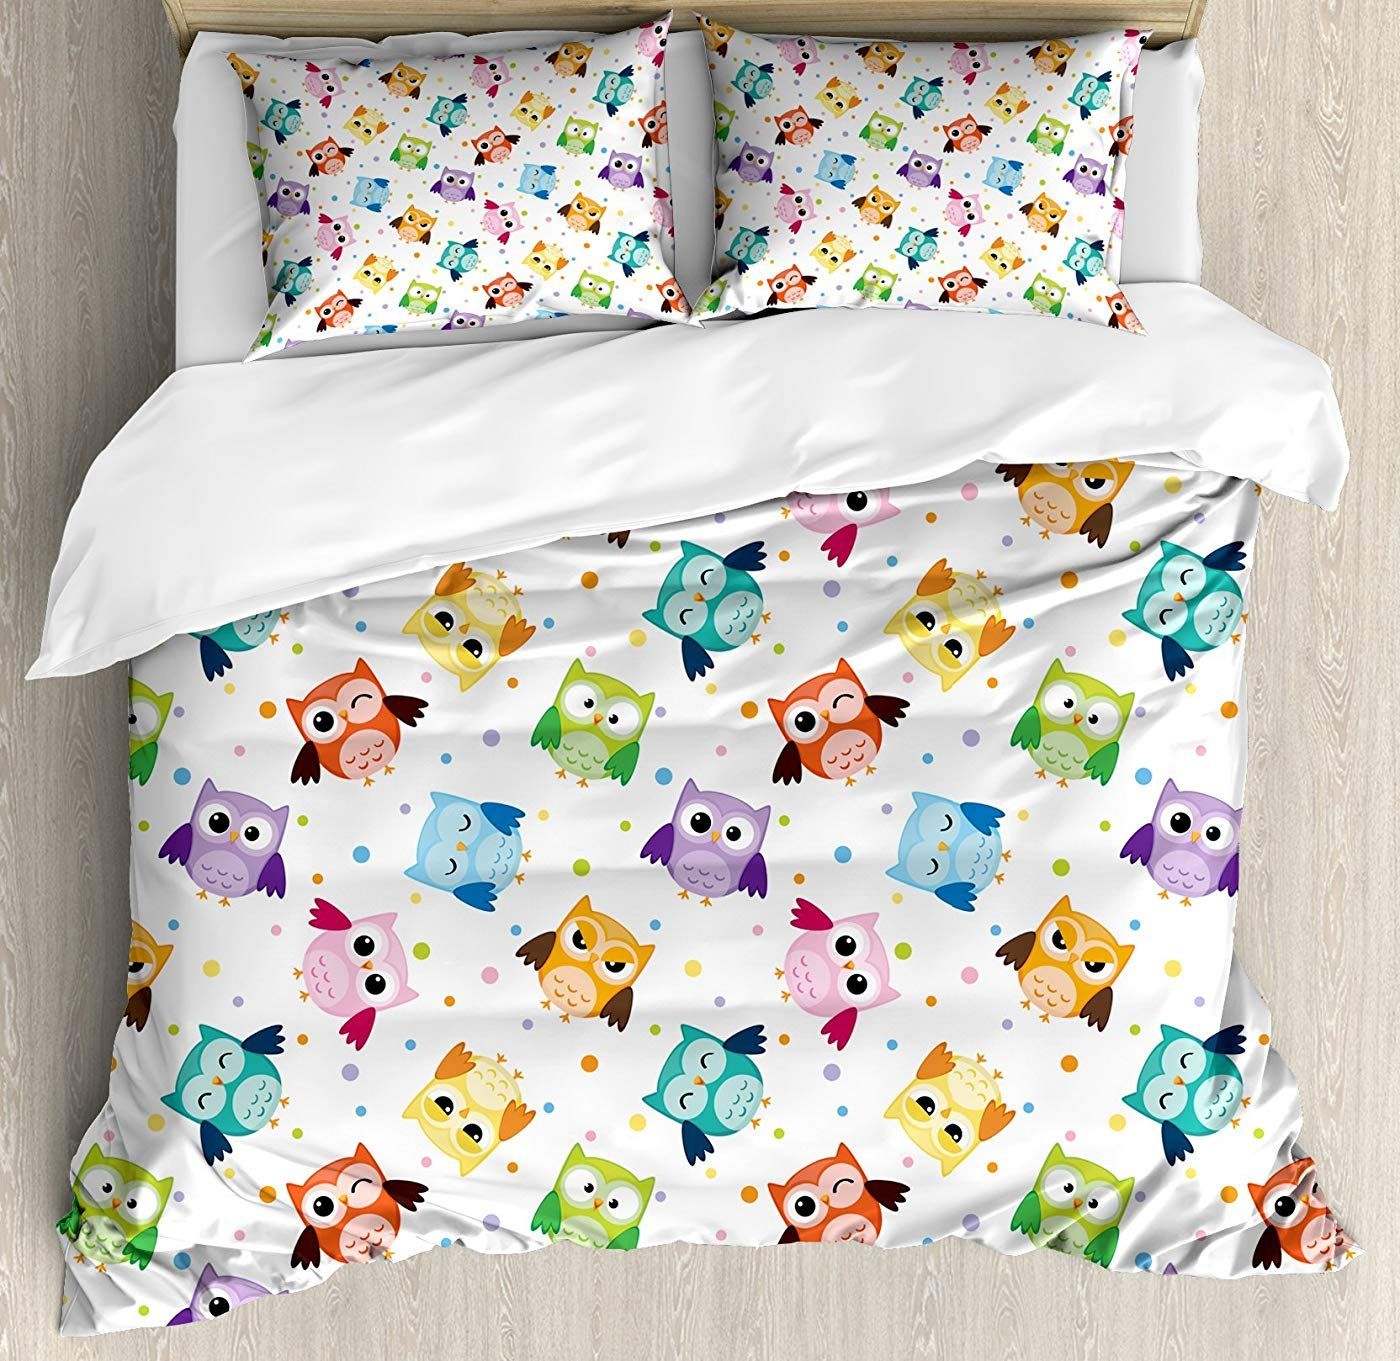 Multi 4 Twin Butterfly Duvet Cover Set Twin Size, Sketch Style Animals Leaves Abstract Nature Depiction Romantic Swirls Lines,Lightweight Microfiber Duvet Cover Sets, Grey Pink White